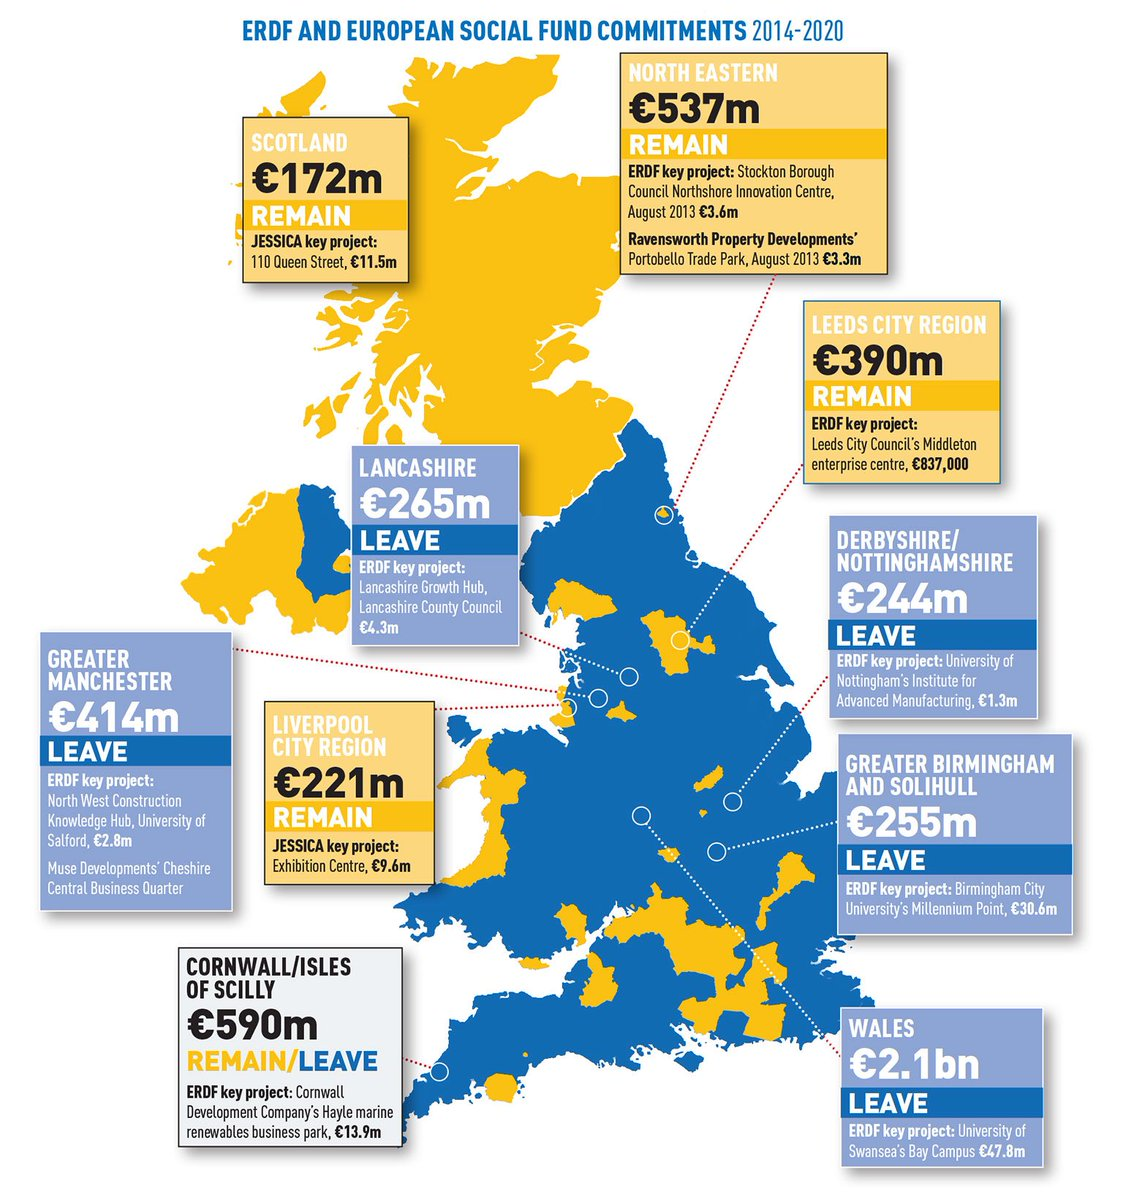 People who claim Britain gets nothing back from the EU really need to look at how much money some regions receive from the European Regional Development Fund And Social Fund. Many projects in these regions will lose out if we leave. #BrexitShambles #PeoplesVote #brexit<br>http://pic.twitter.com/YC5avQPC2H